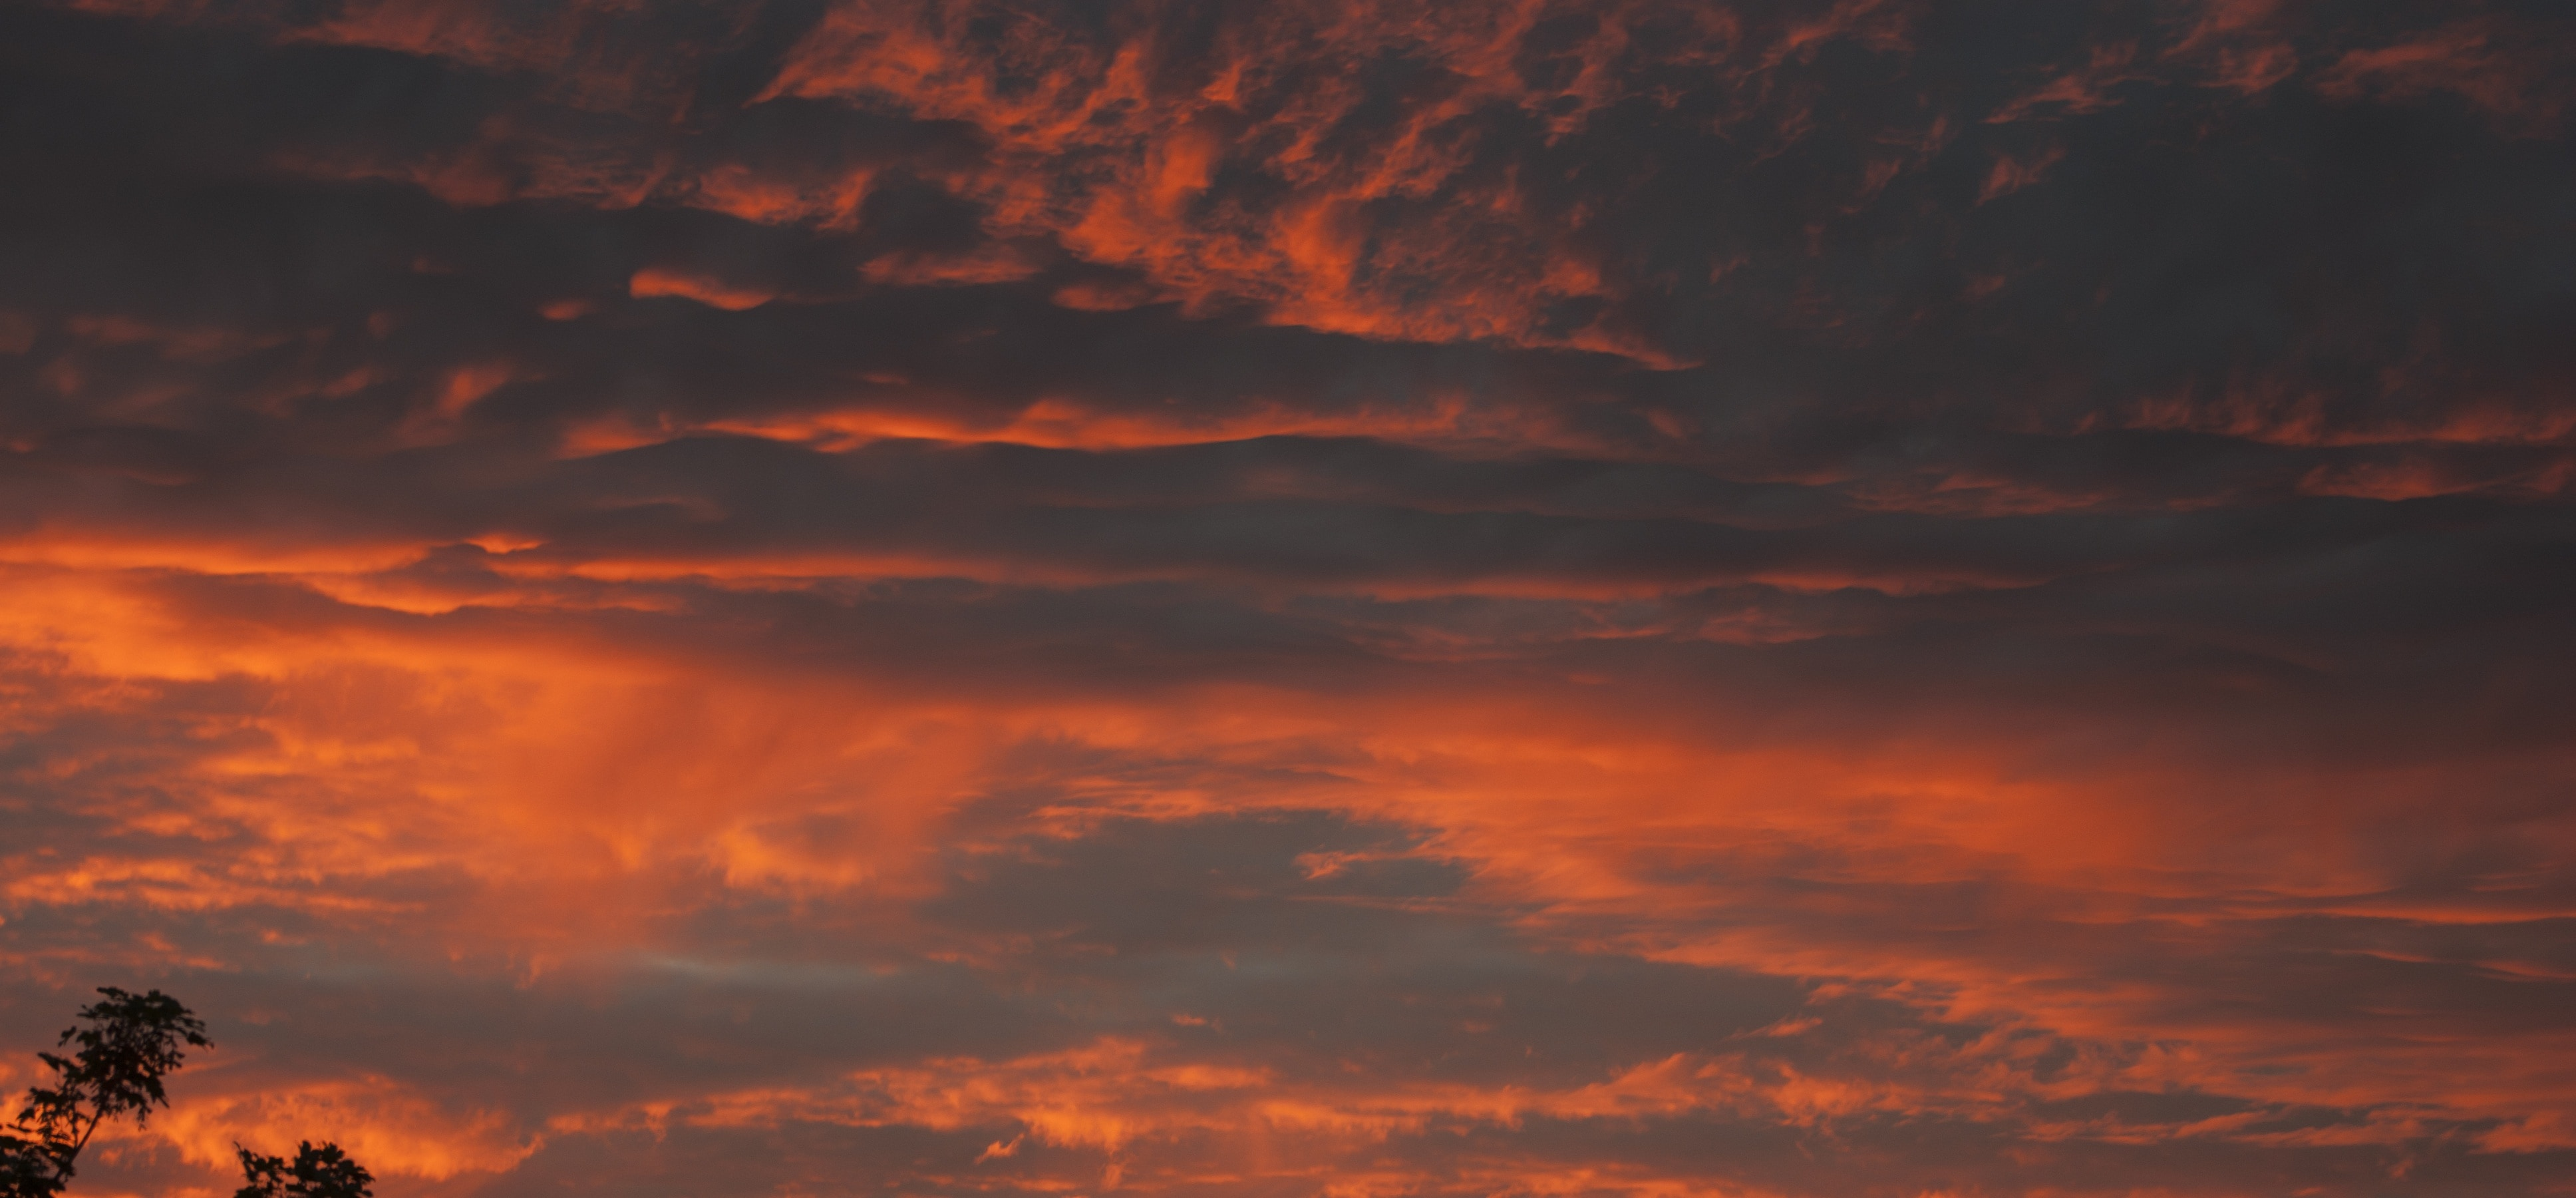 Orange Color Wallpaper Hd Gray And Orange Cloudy Dark Sky Free Image Peakpx